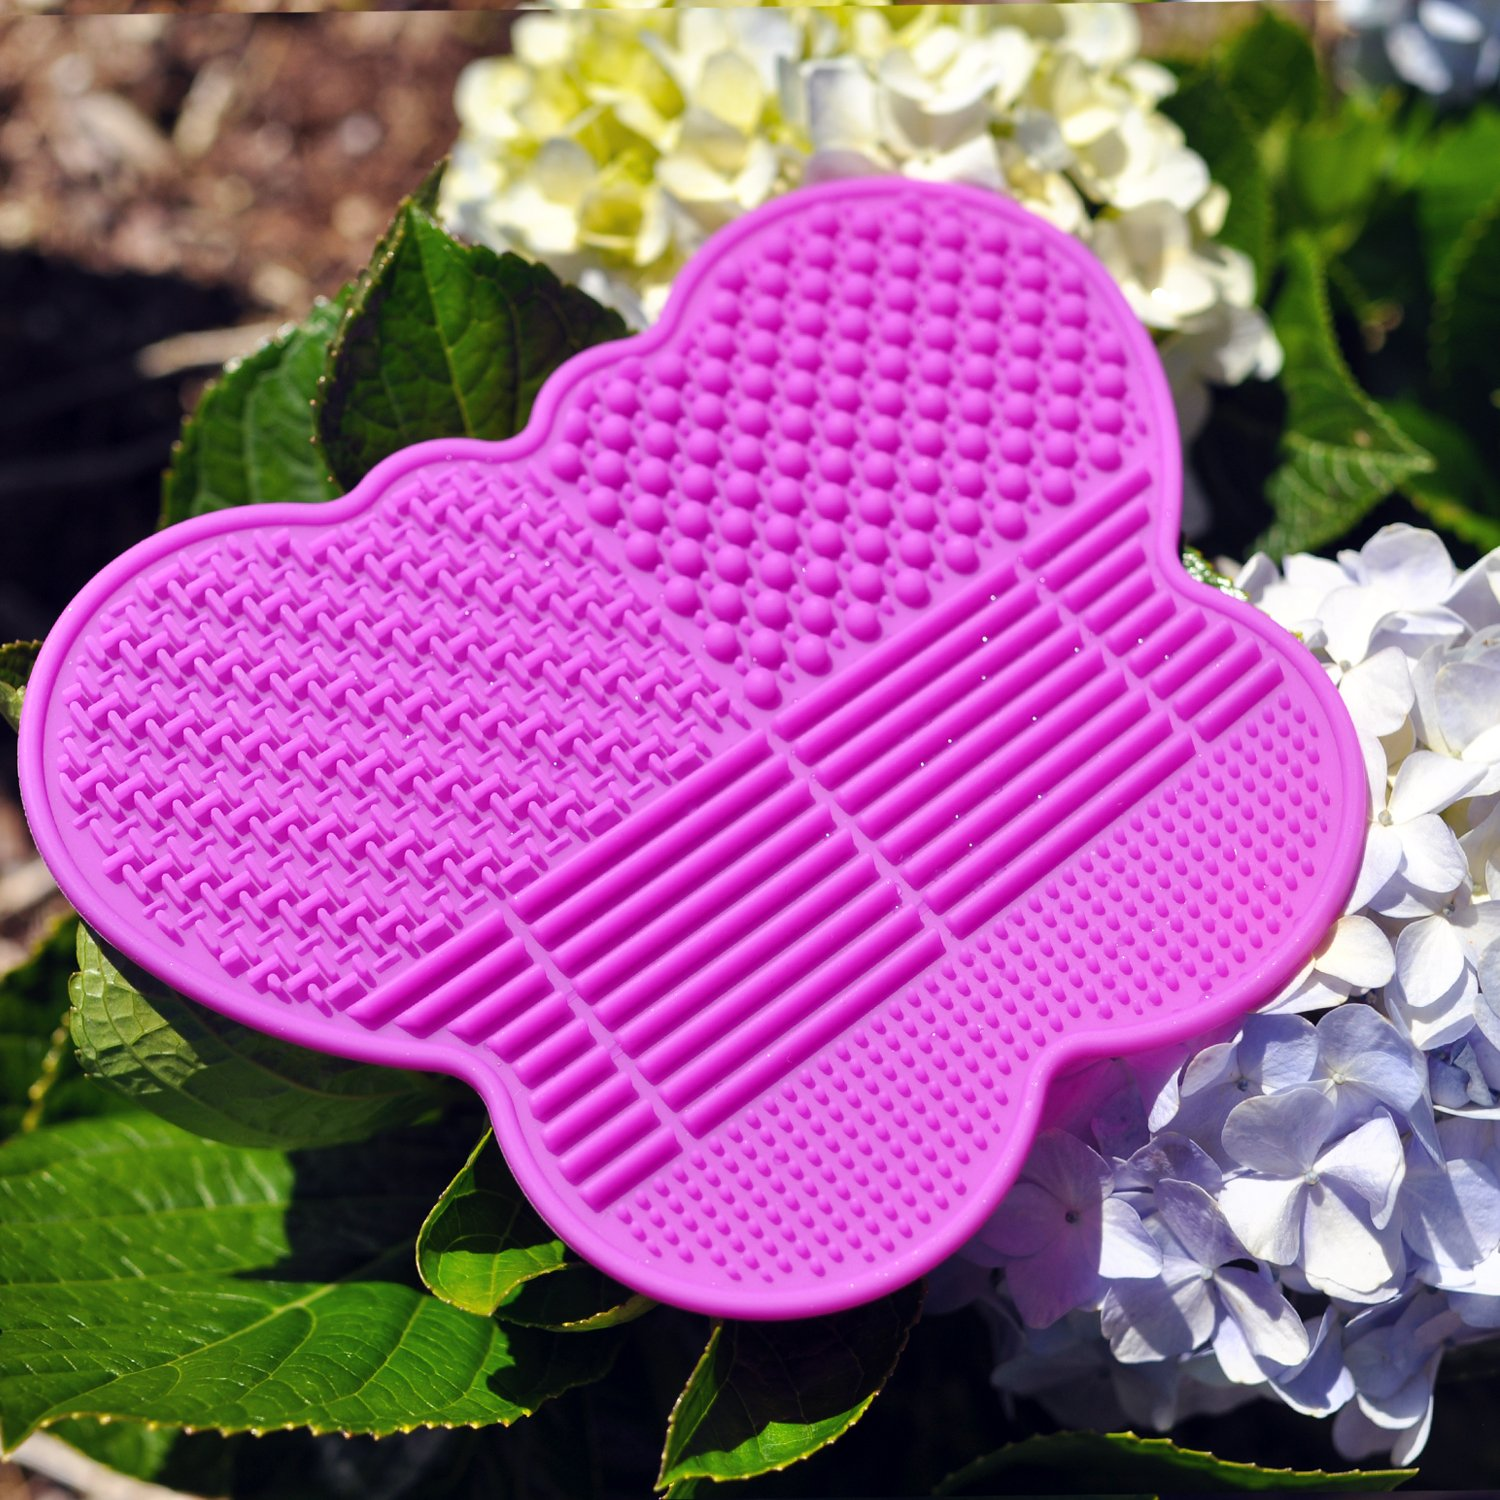 # 1 Silicone Makeup Brush Cleaning Mat -Butterfly shape Scrubber - Portable Beauty Washing Tool to Extend the Use of Your Make up and Art Painting Brushes - Best Cleaner Pad ! (Pink)